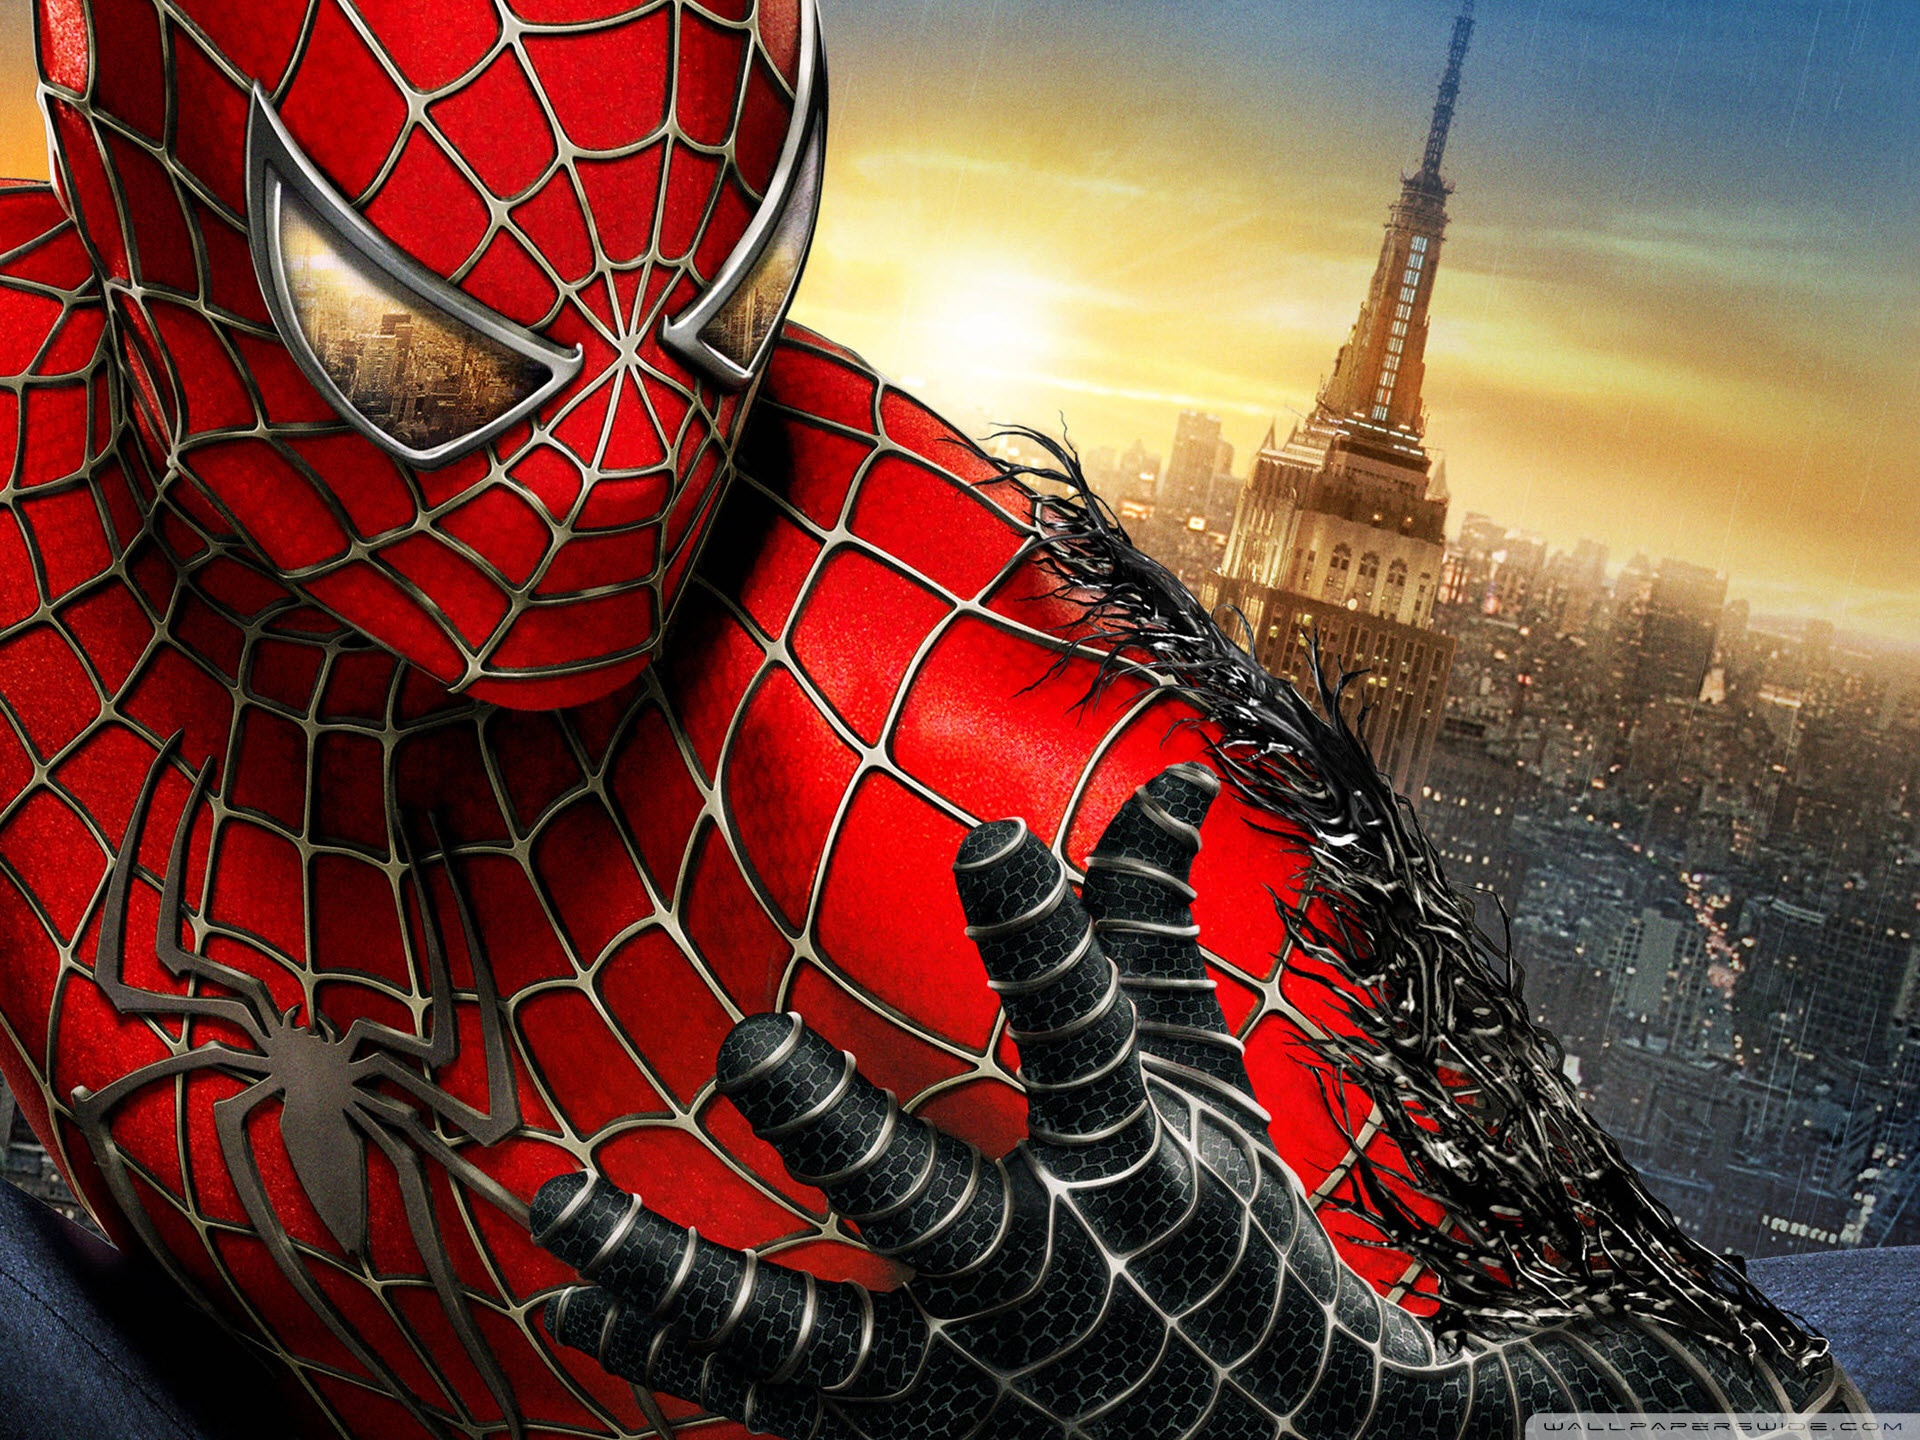 WallpapersWide com | Spider-Man HD Desktop Wallpapers for